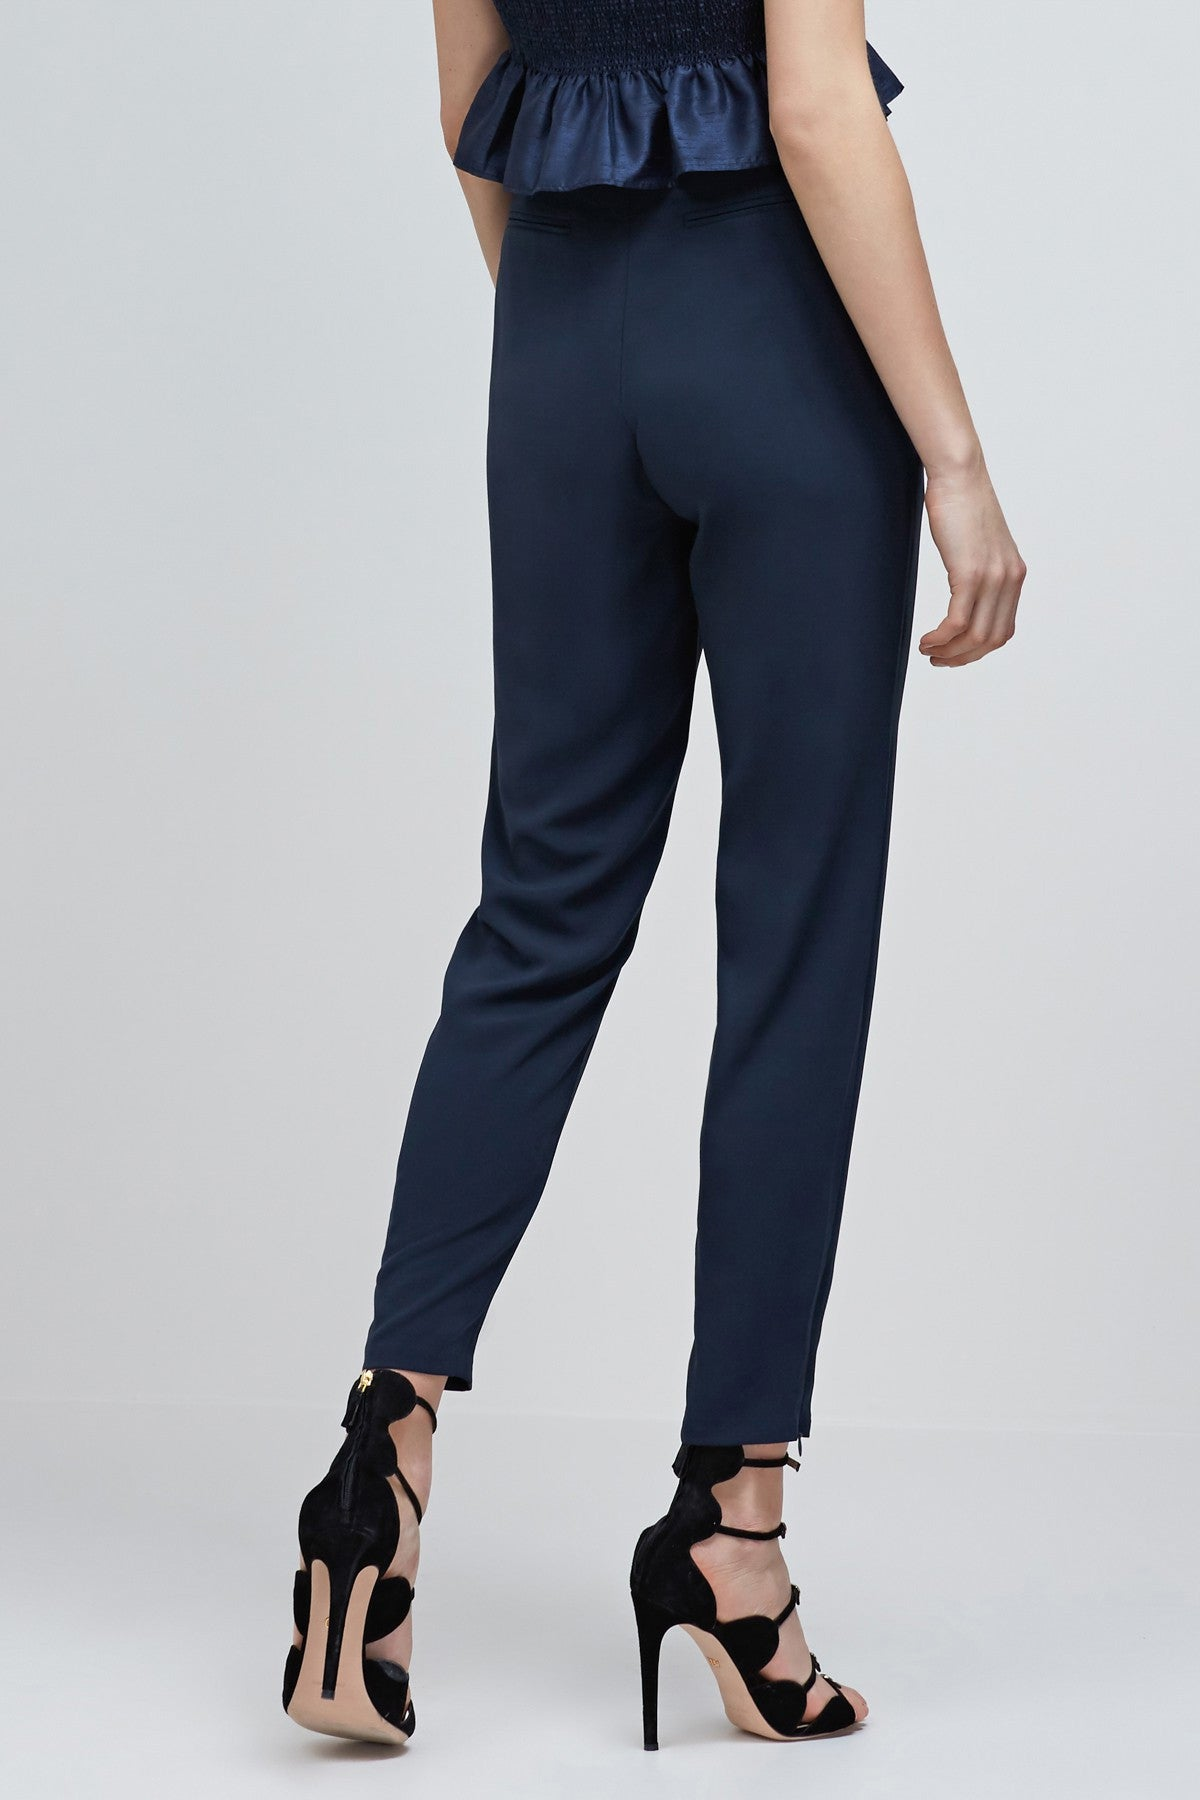 Spectrum Pant Navy Back